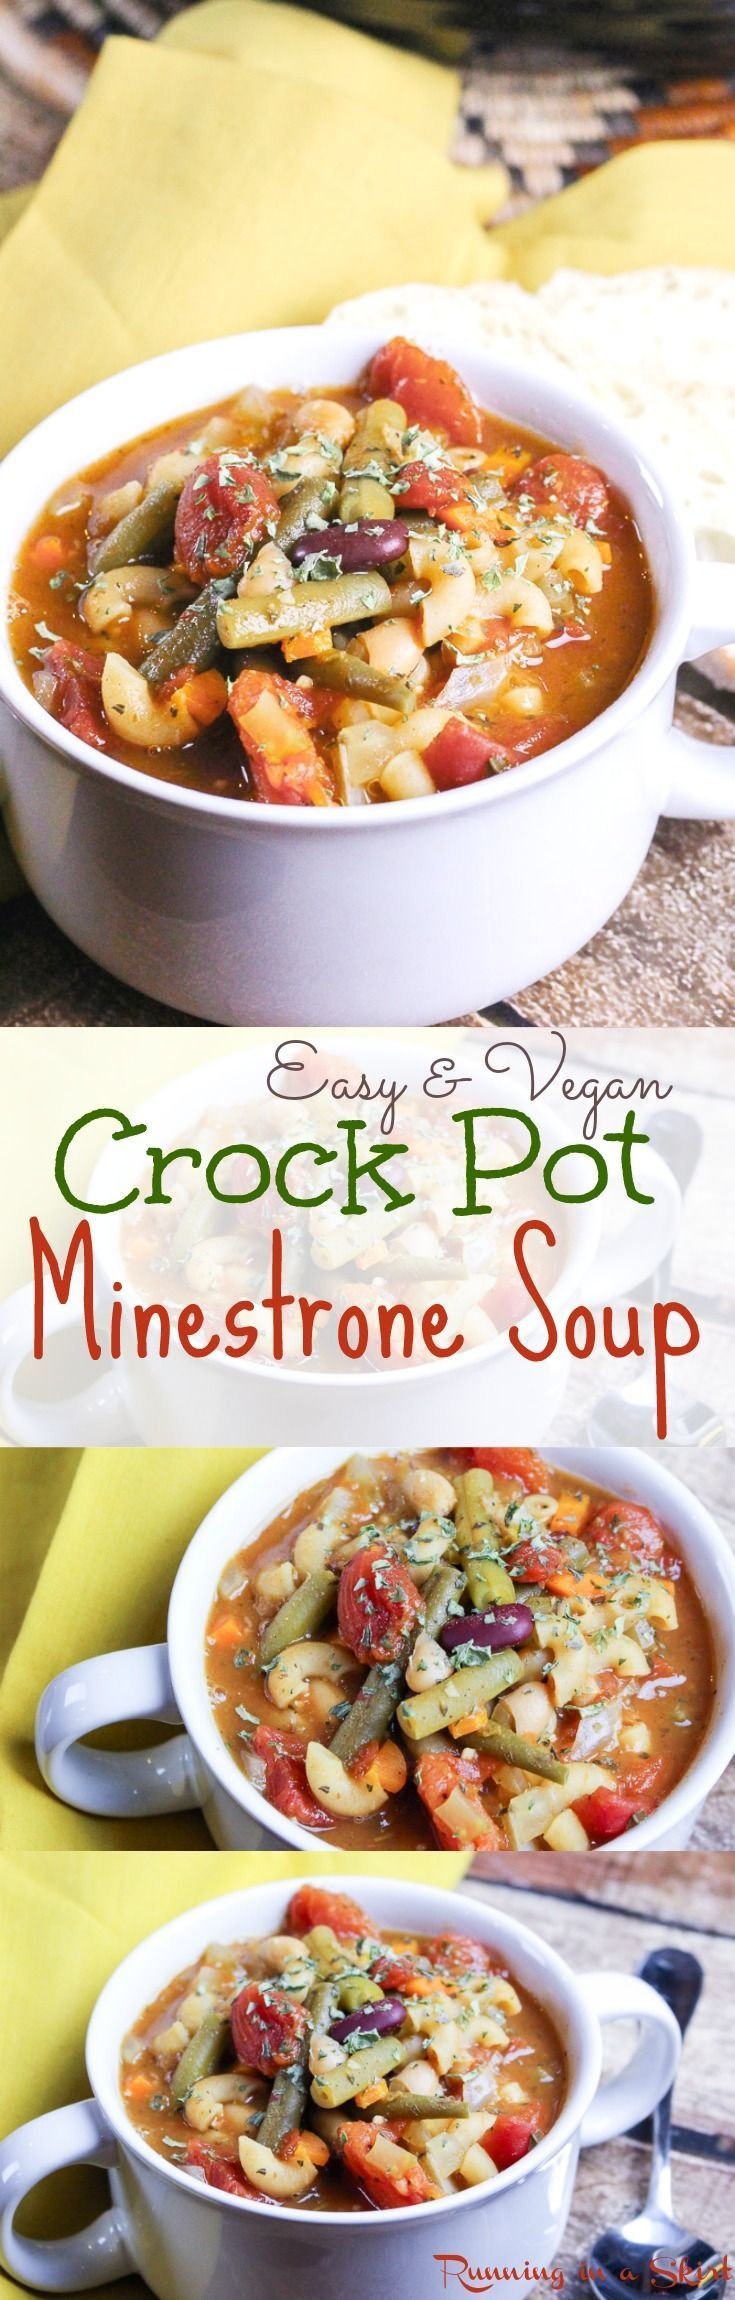 17 best images about soup recipes on pinterest easy for Healthy vegetarian crock pot recipes easy